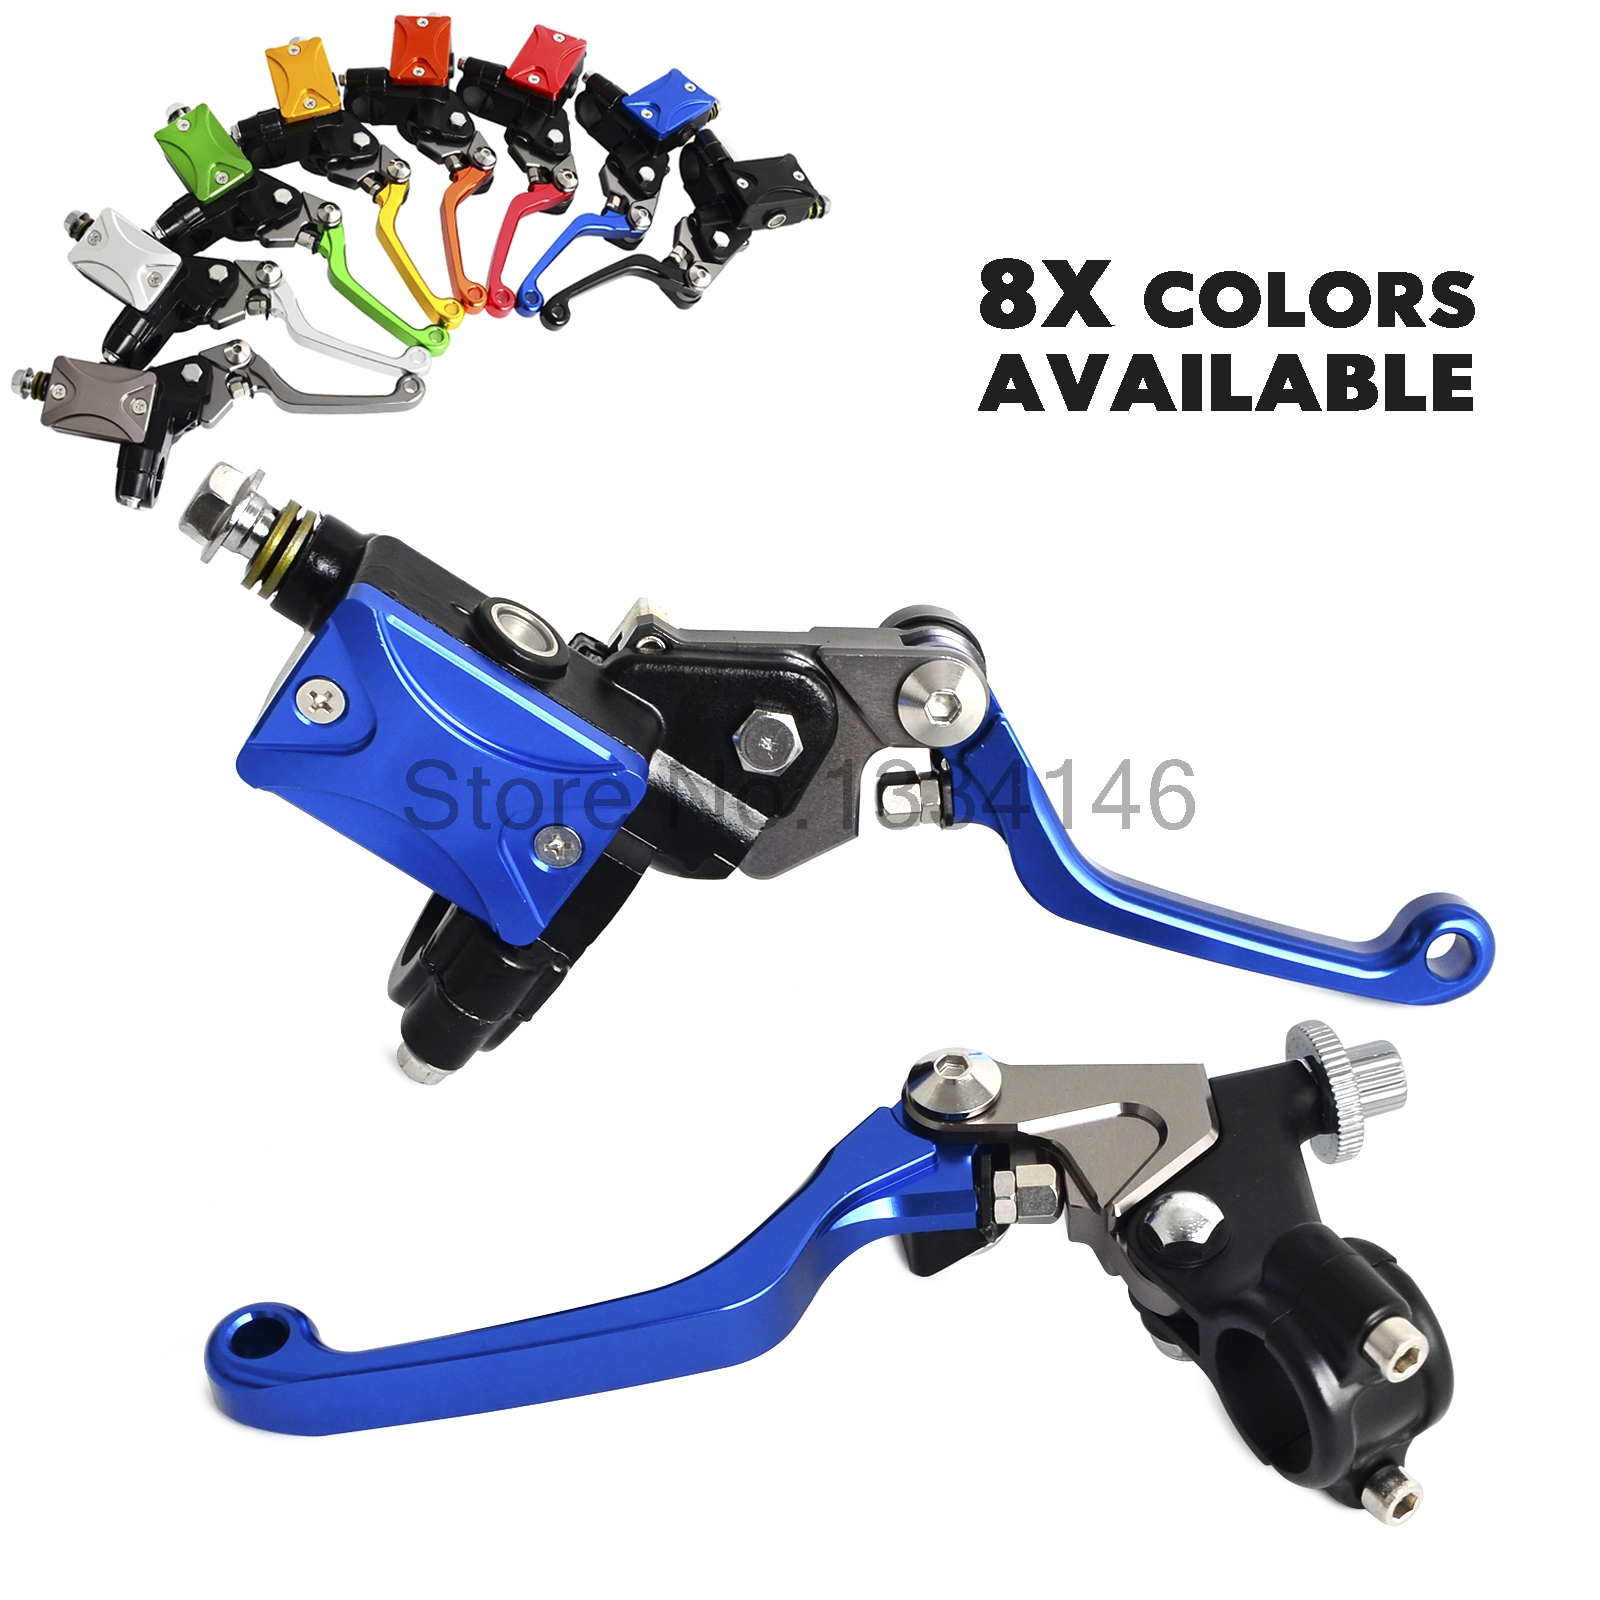 Motorcycle 7/8Hydraulic Brake & Cable Clutch Lever Set Assembly For Yamaha YZ80 85 125 250 WR 250 450 TTR XT 250 600 YFZ450